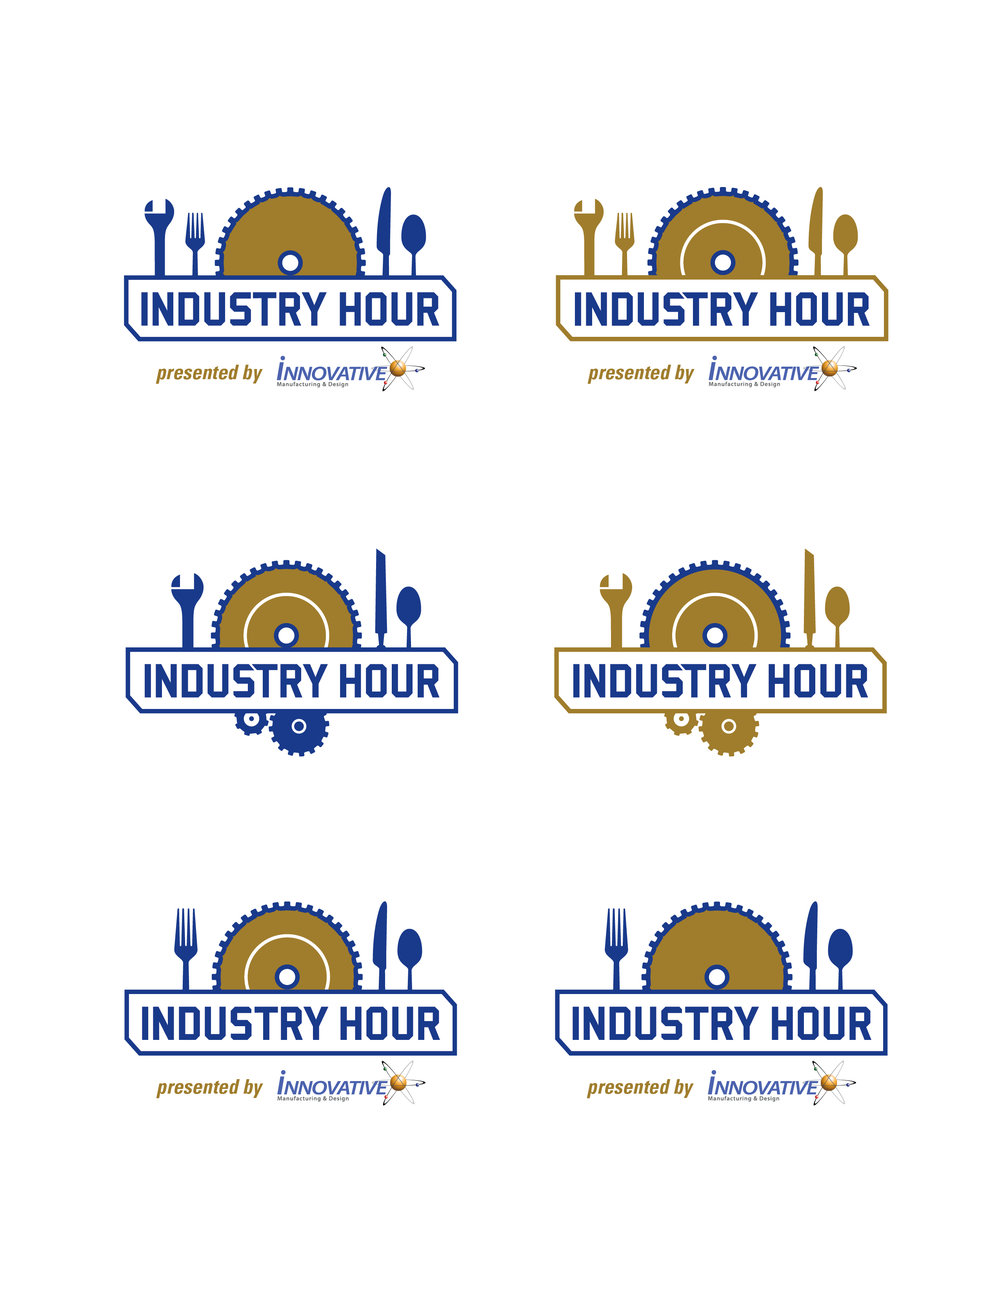 industry-hour-final-design-full-color2.jpg